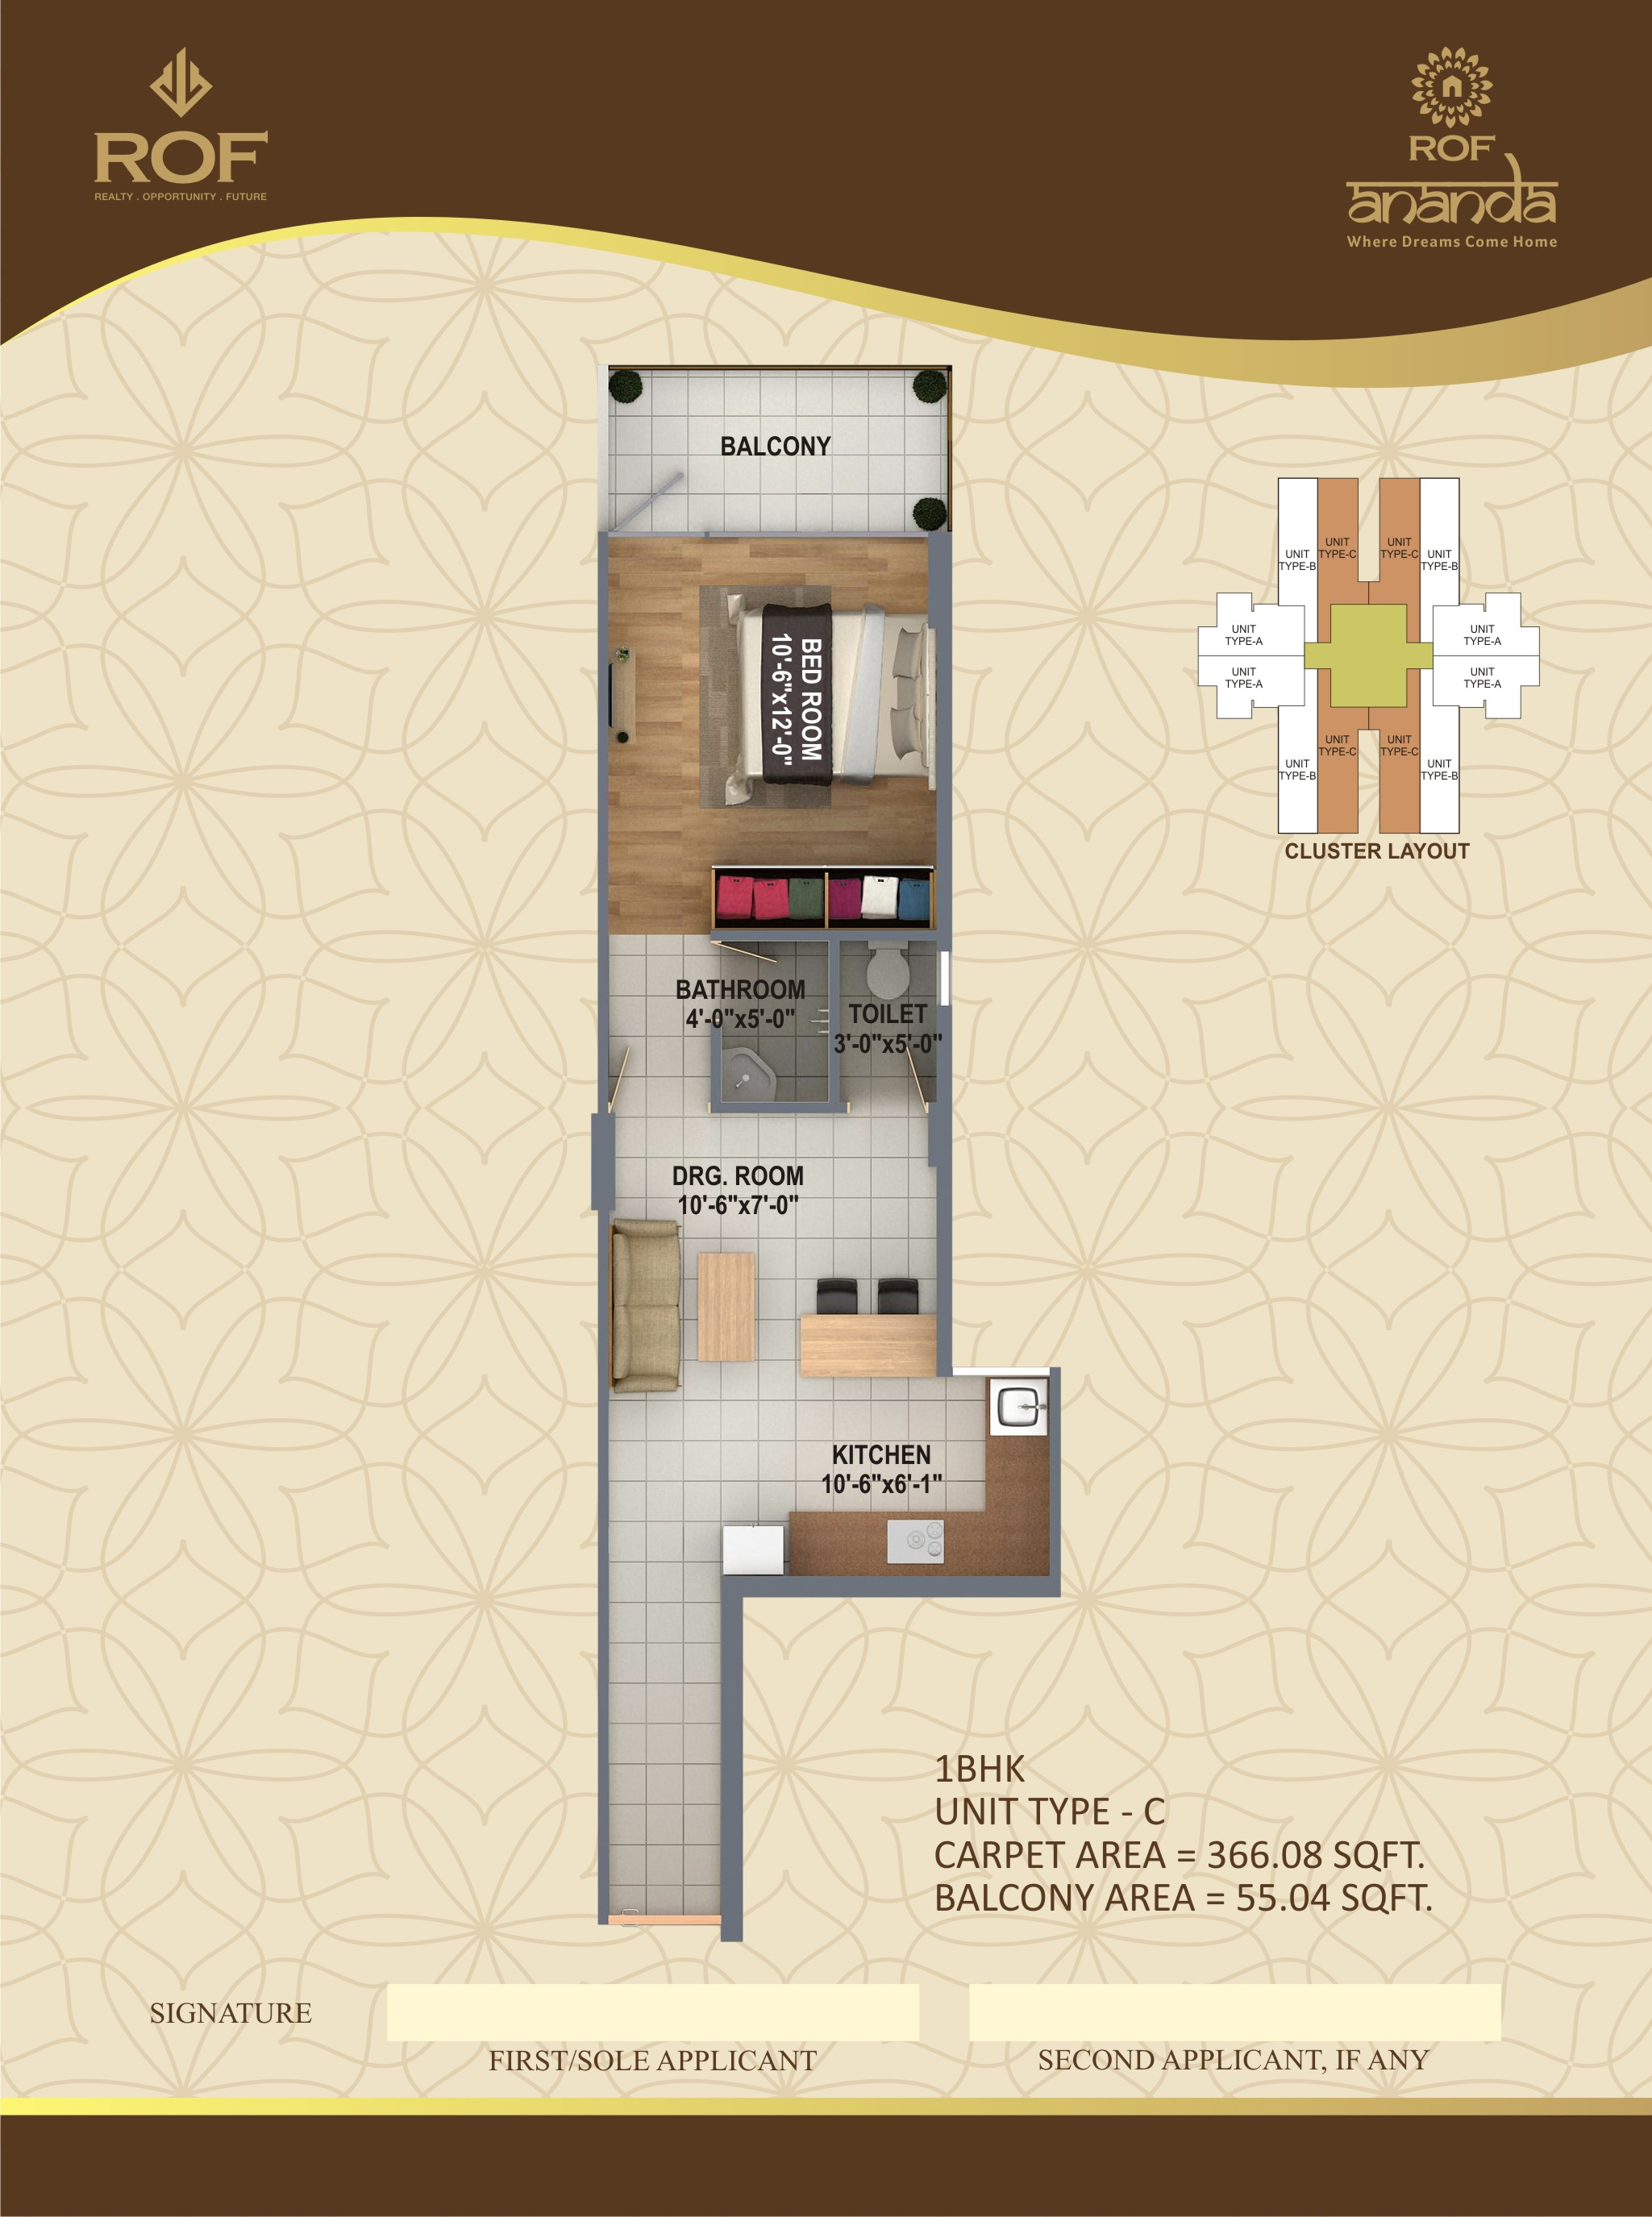 ROF Ramada Ananda Affordable Housing Sector 95 Gurgaon